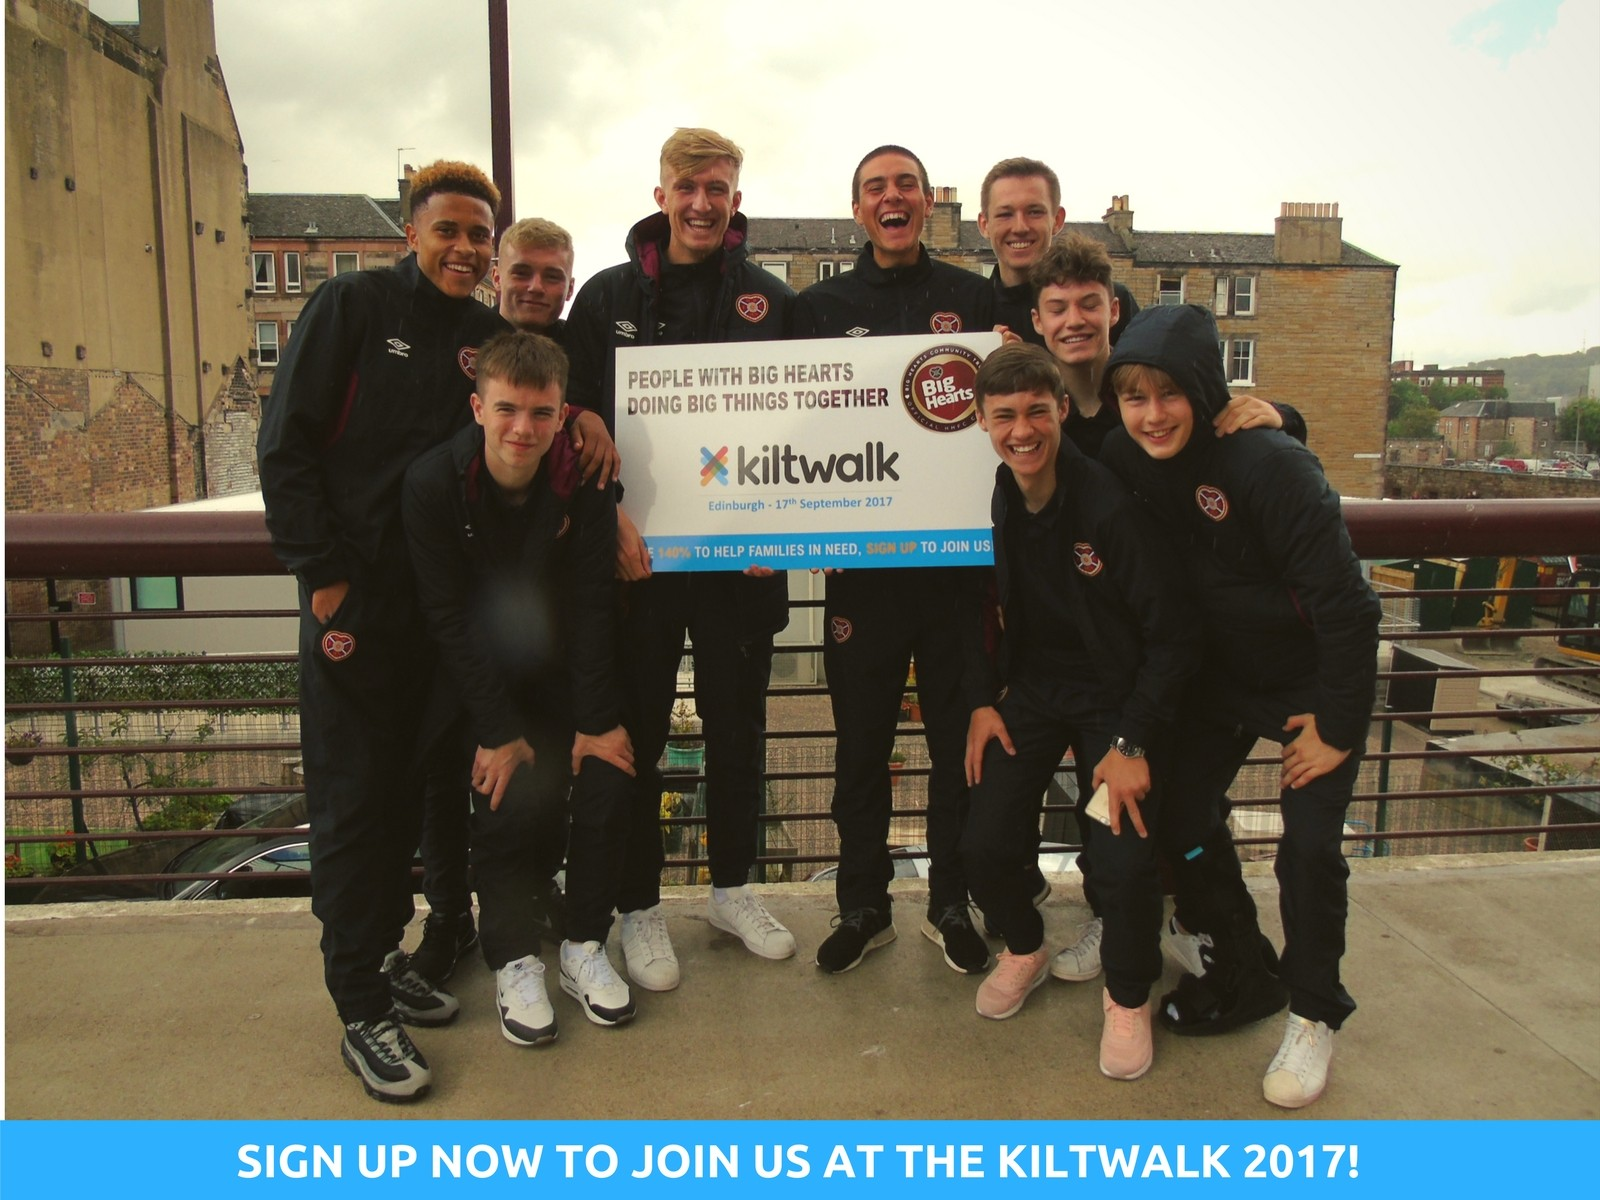 » JOIN BIG HEARTS' TEAM AT THE EDINBURGH KILTWALK!